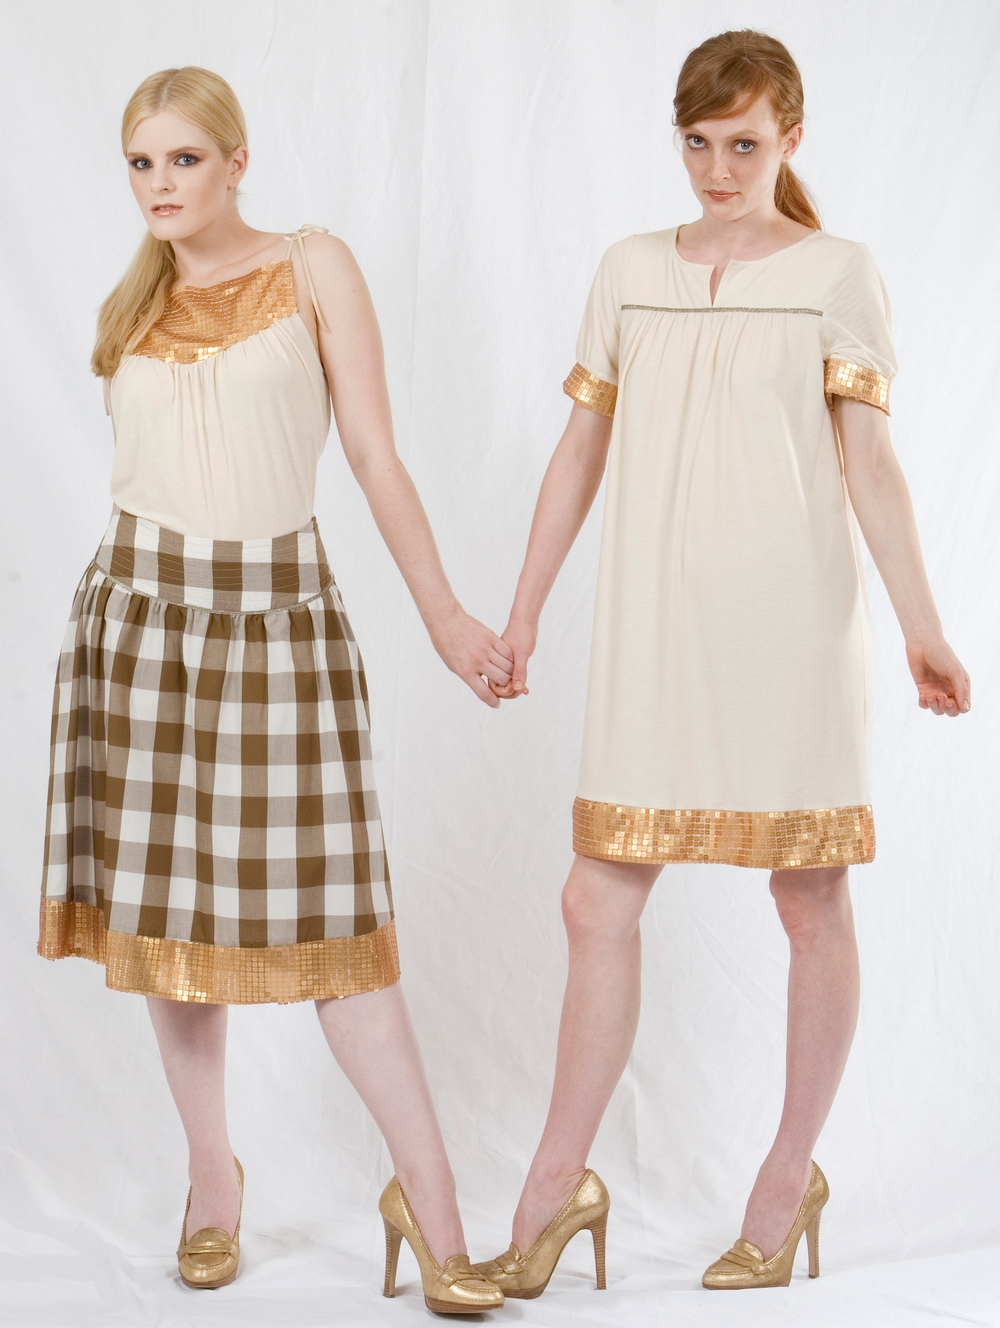 Triangle Top in Ecru Jersey w/ Gold Sequined Yoke & Faux Leater Ties.  Full-Yoke Skirt in Cotton Gingham w/ Gold Sequined Hem & Metallic Trim   On the right:   Edie Dress in Ecru Jersey w/ Gold Sequined Hem & Sleeve Bands & Metallic Trim.